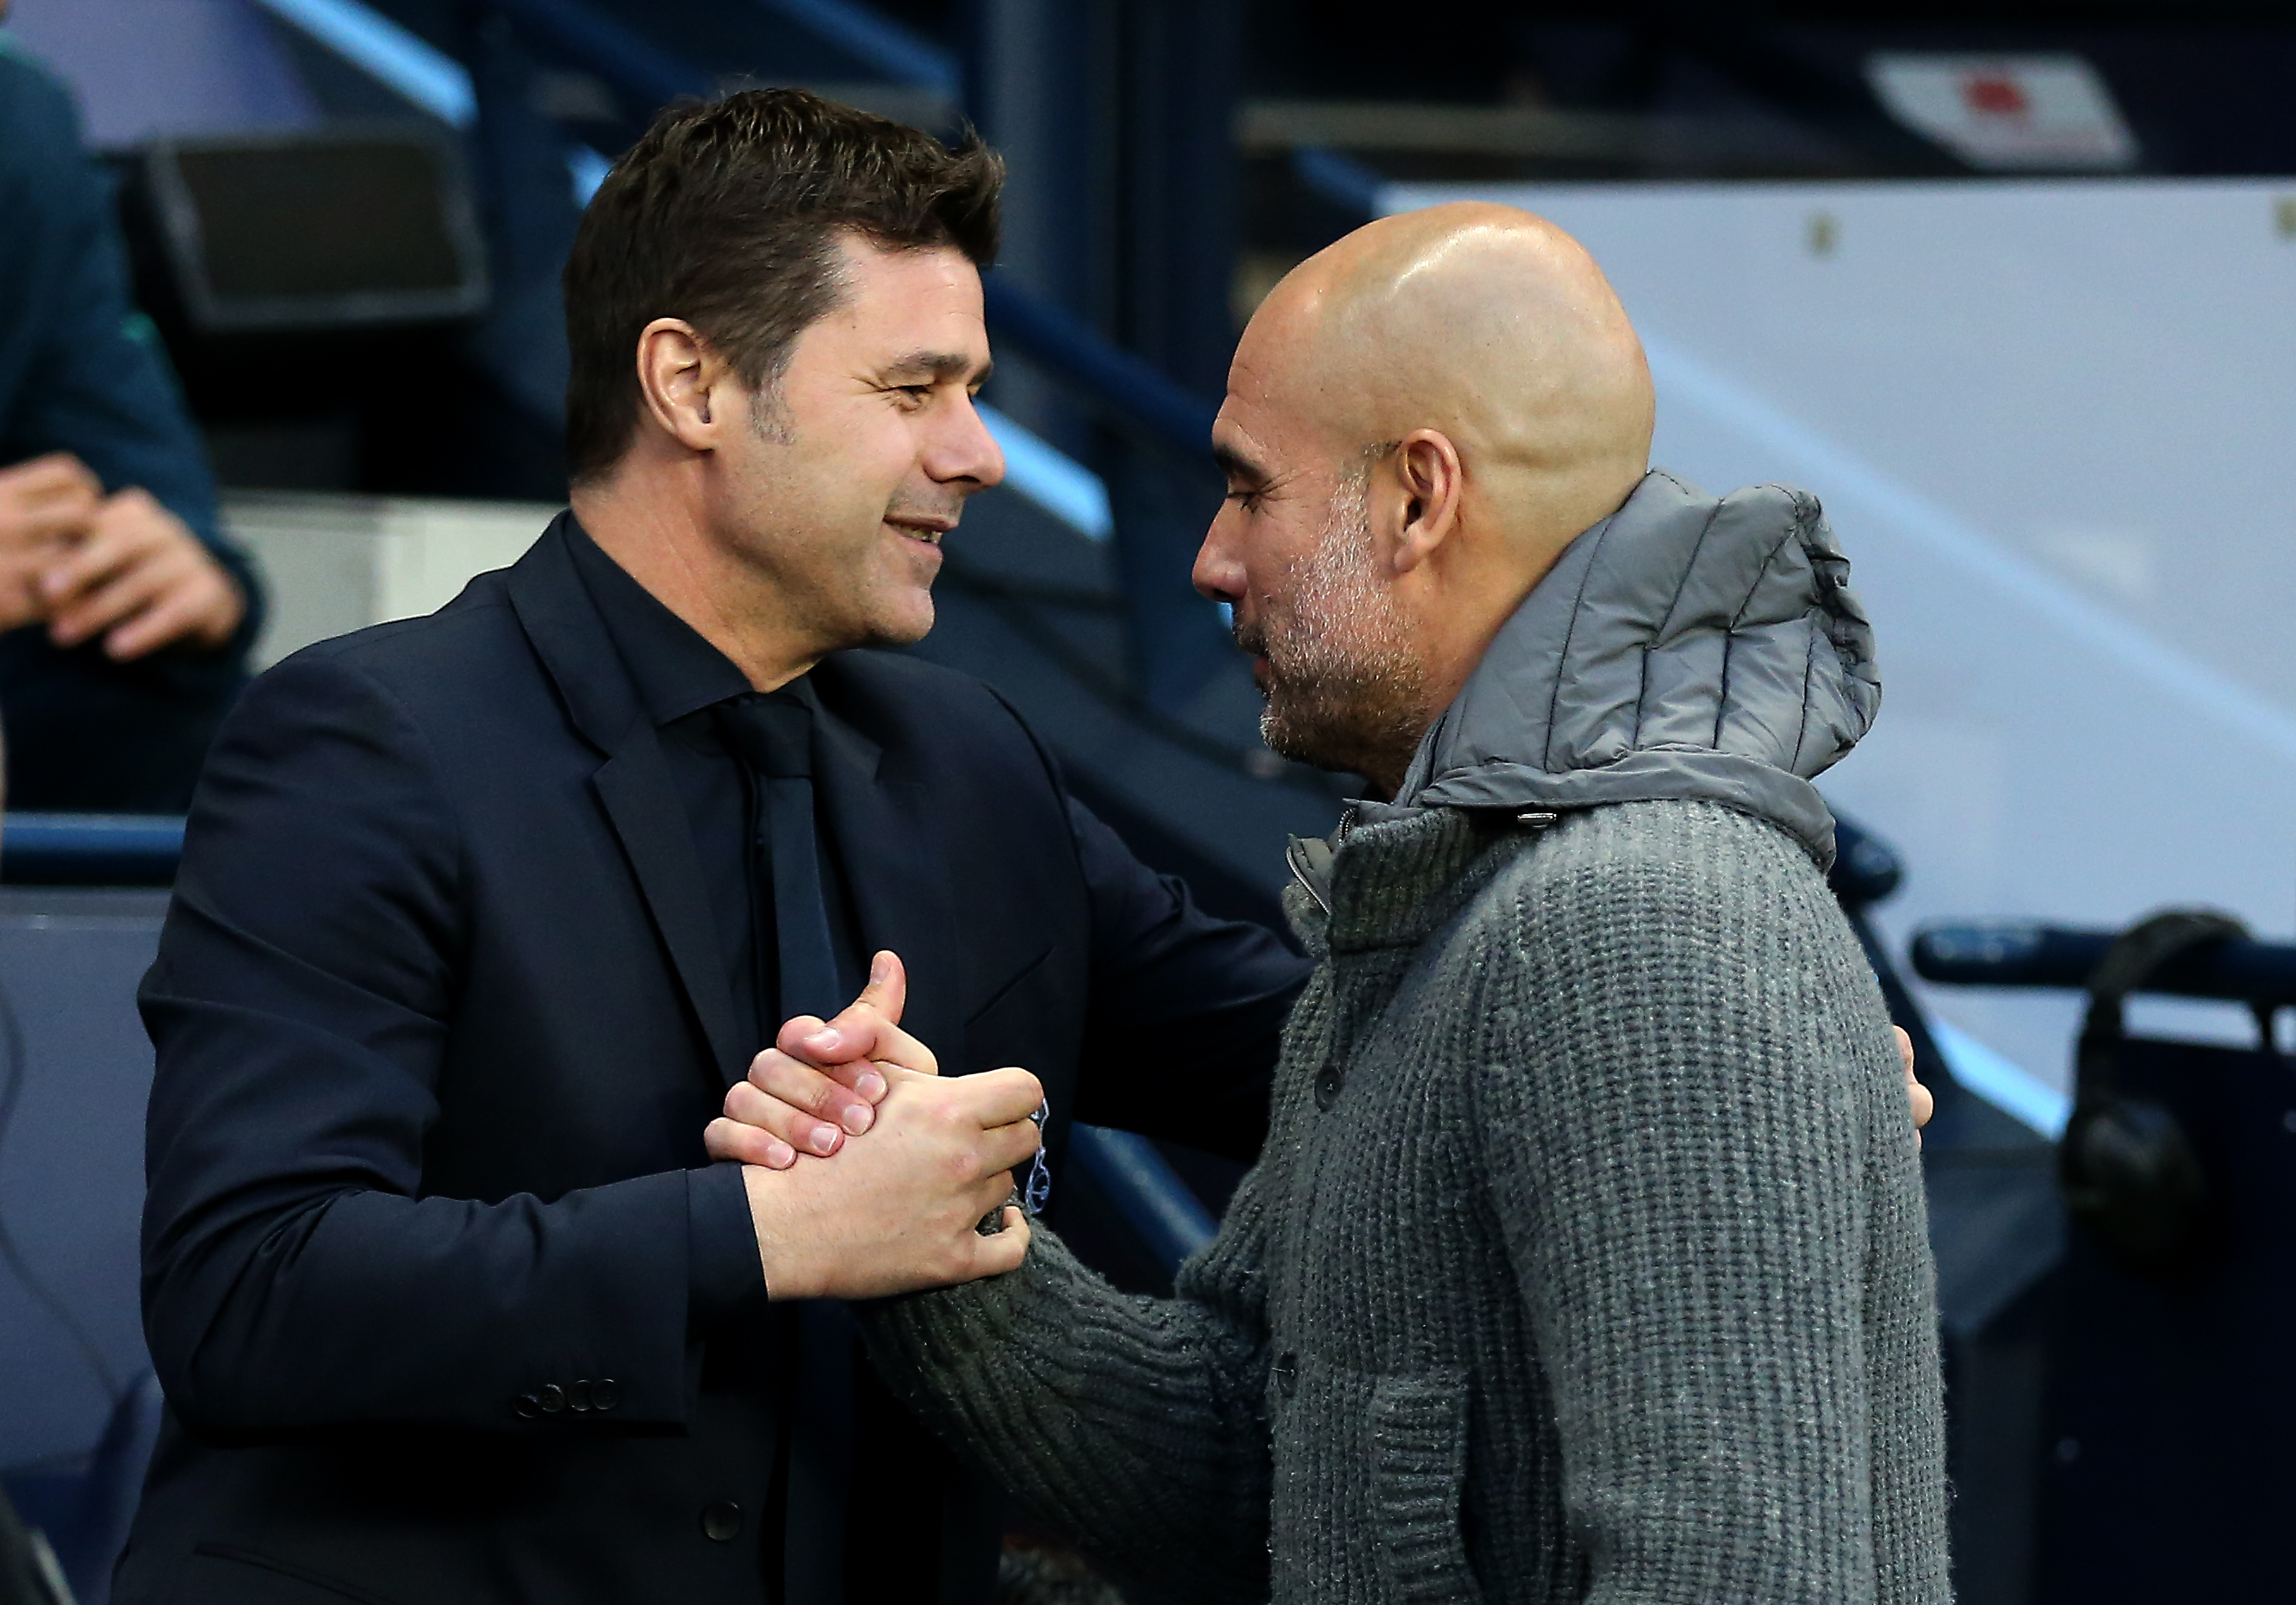 Mauricio Pochettino (left) and Pep Guardiola (right) are the two highest-paid managers in the Premier League